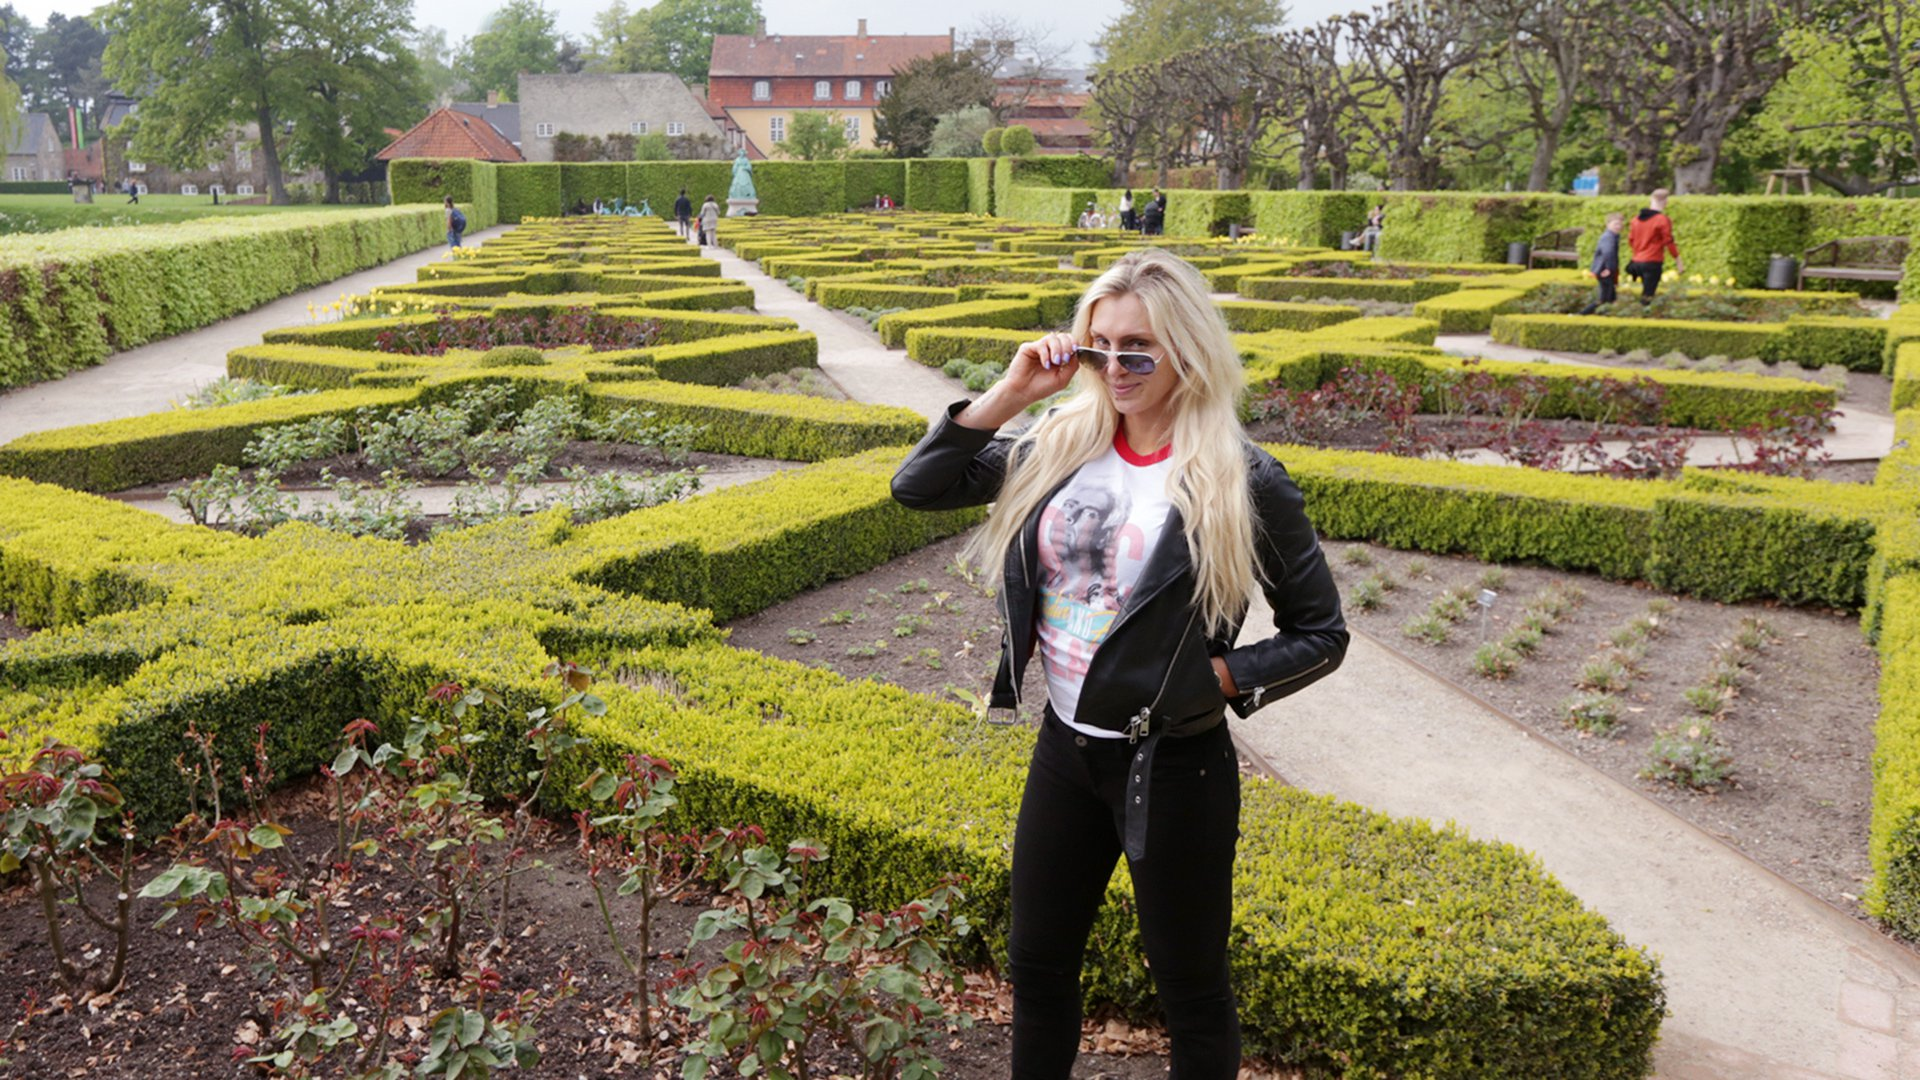 The Queen poses in front of The King's Garden.